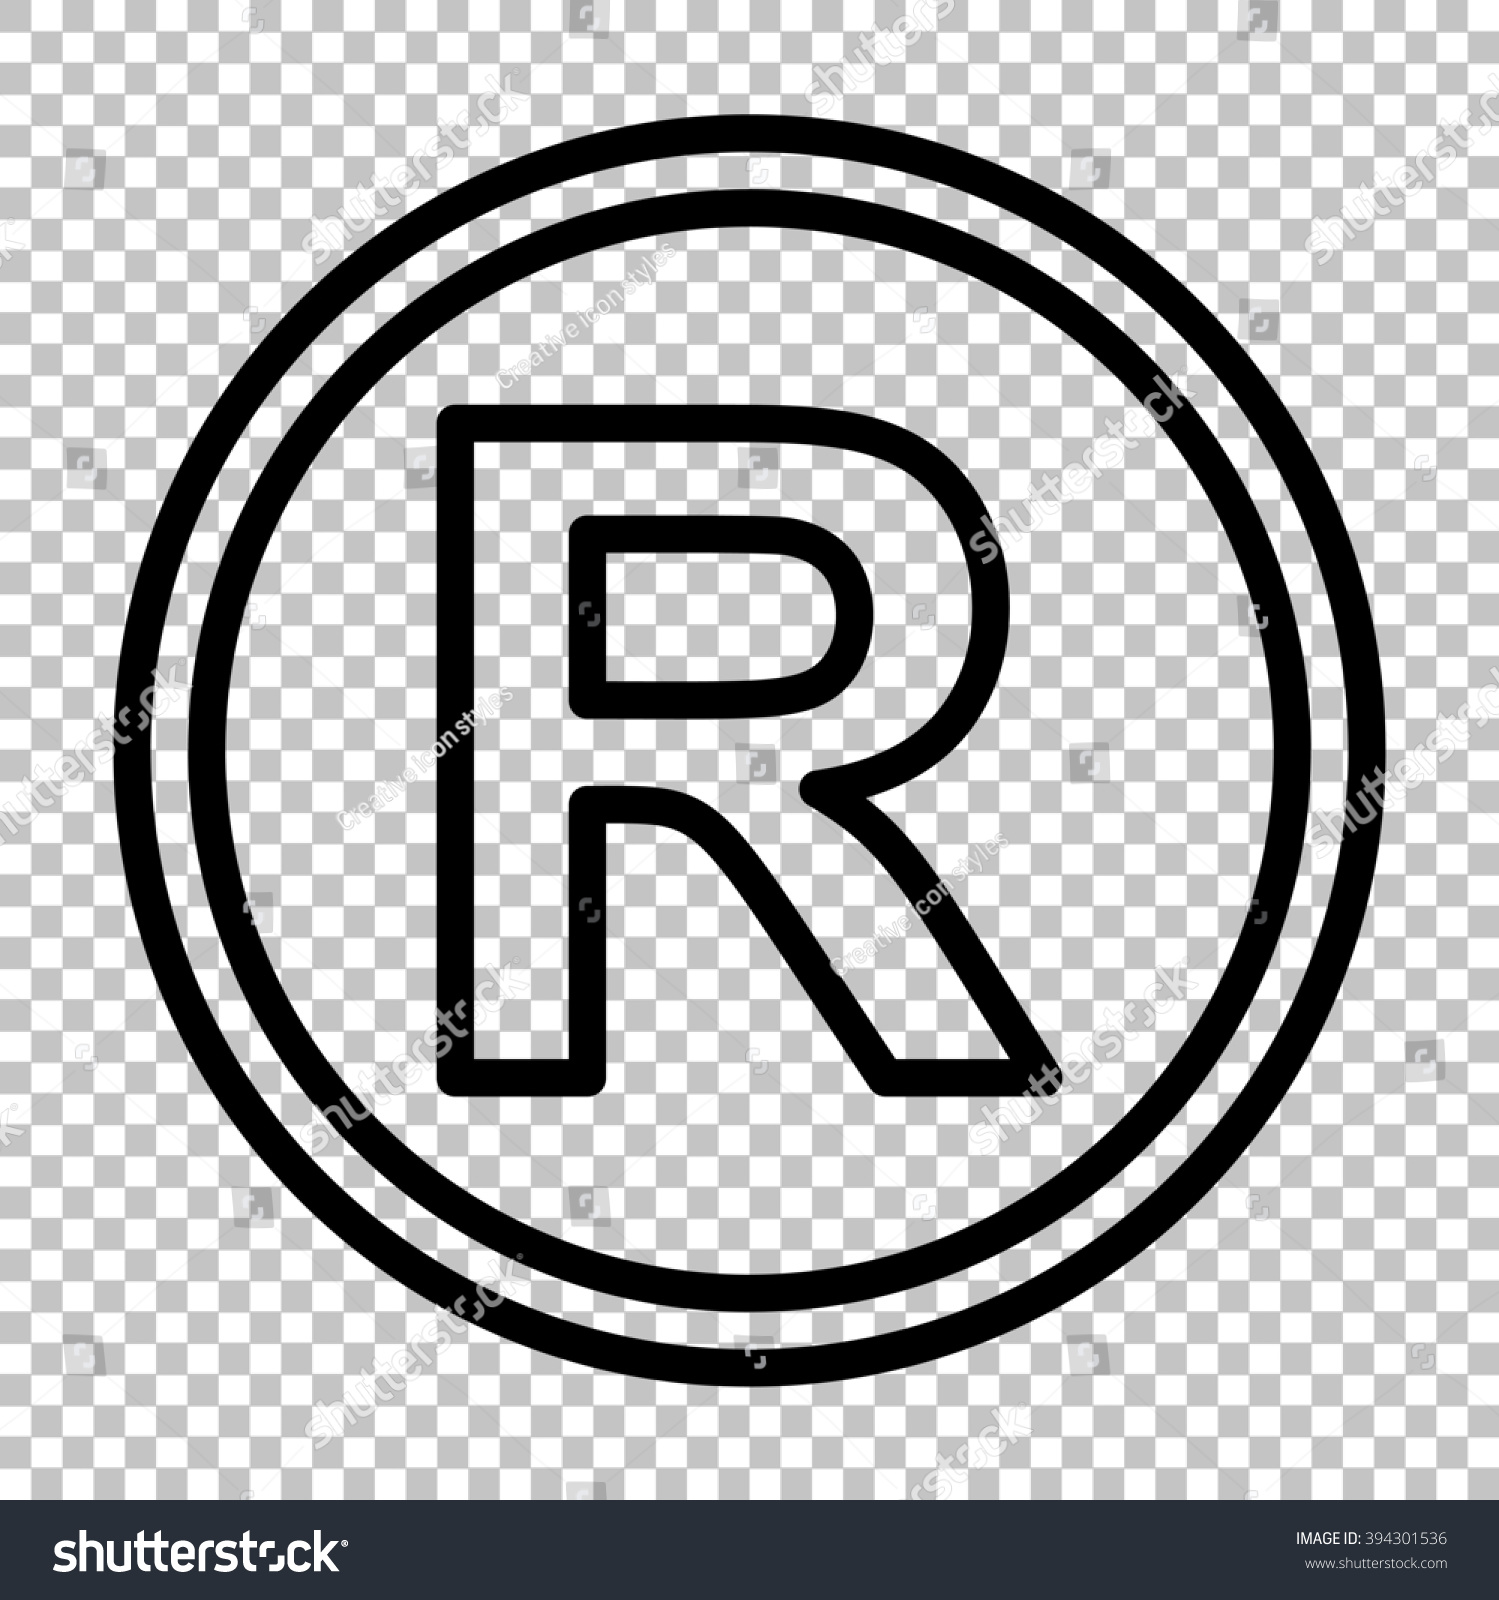 Registered trademark sign line icon on stock illustration 394301536 registered trademark sign line icon on transparent background biocorpaavc Choice Image